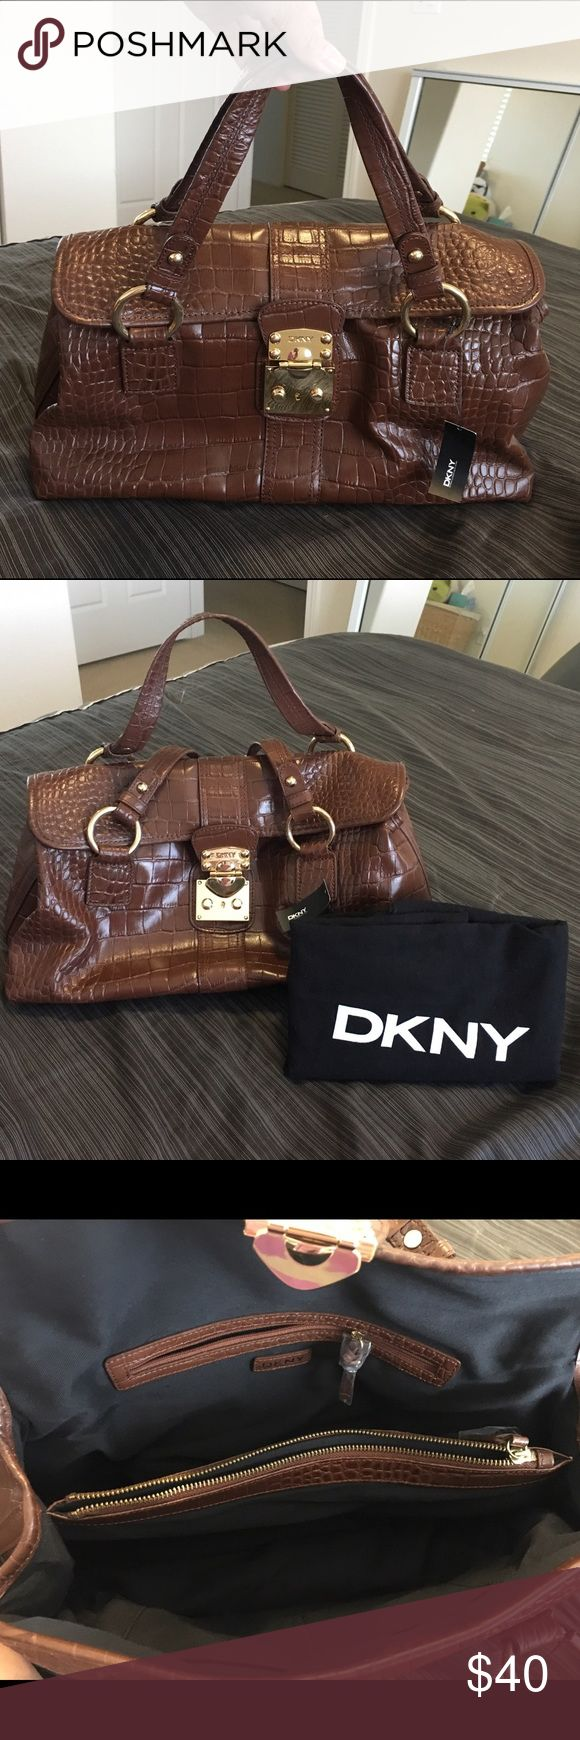 DKNY dark brown bag NWT DKNY dark brown faux croc handbag with dust bag. DKNY Bags